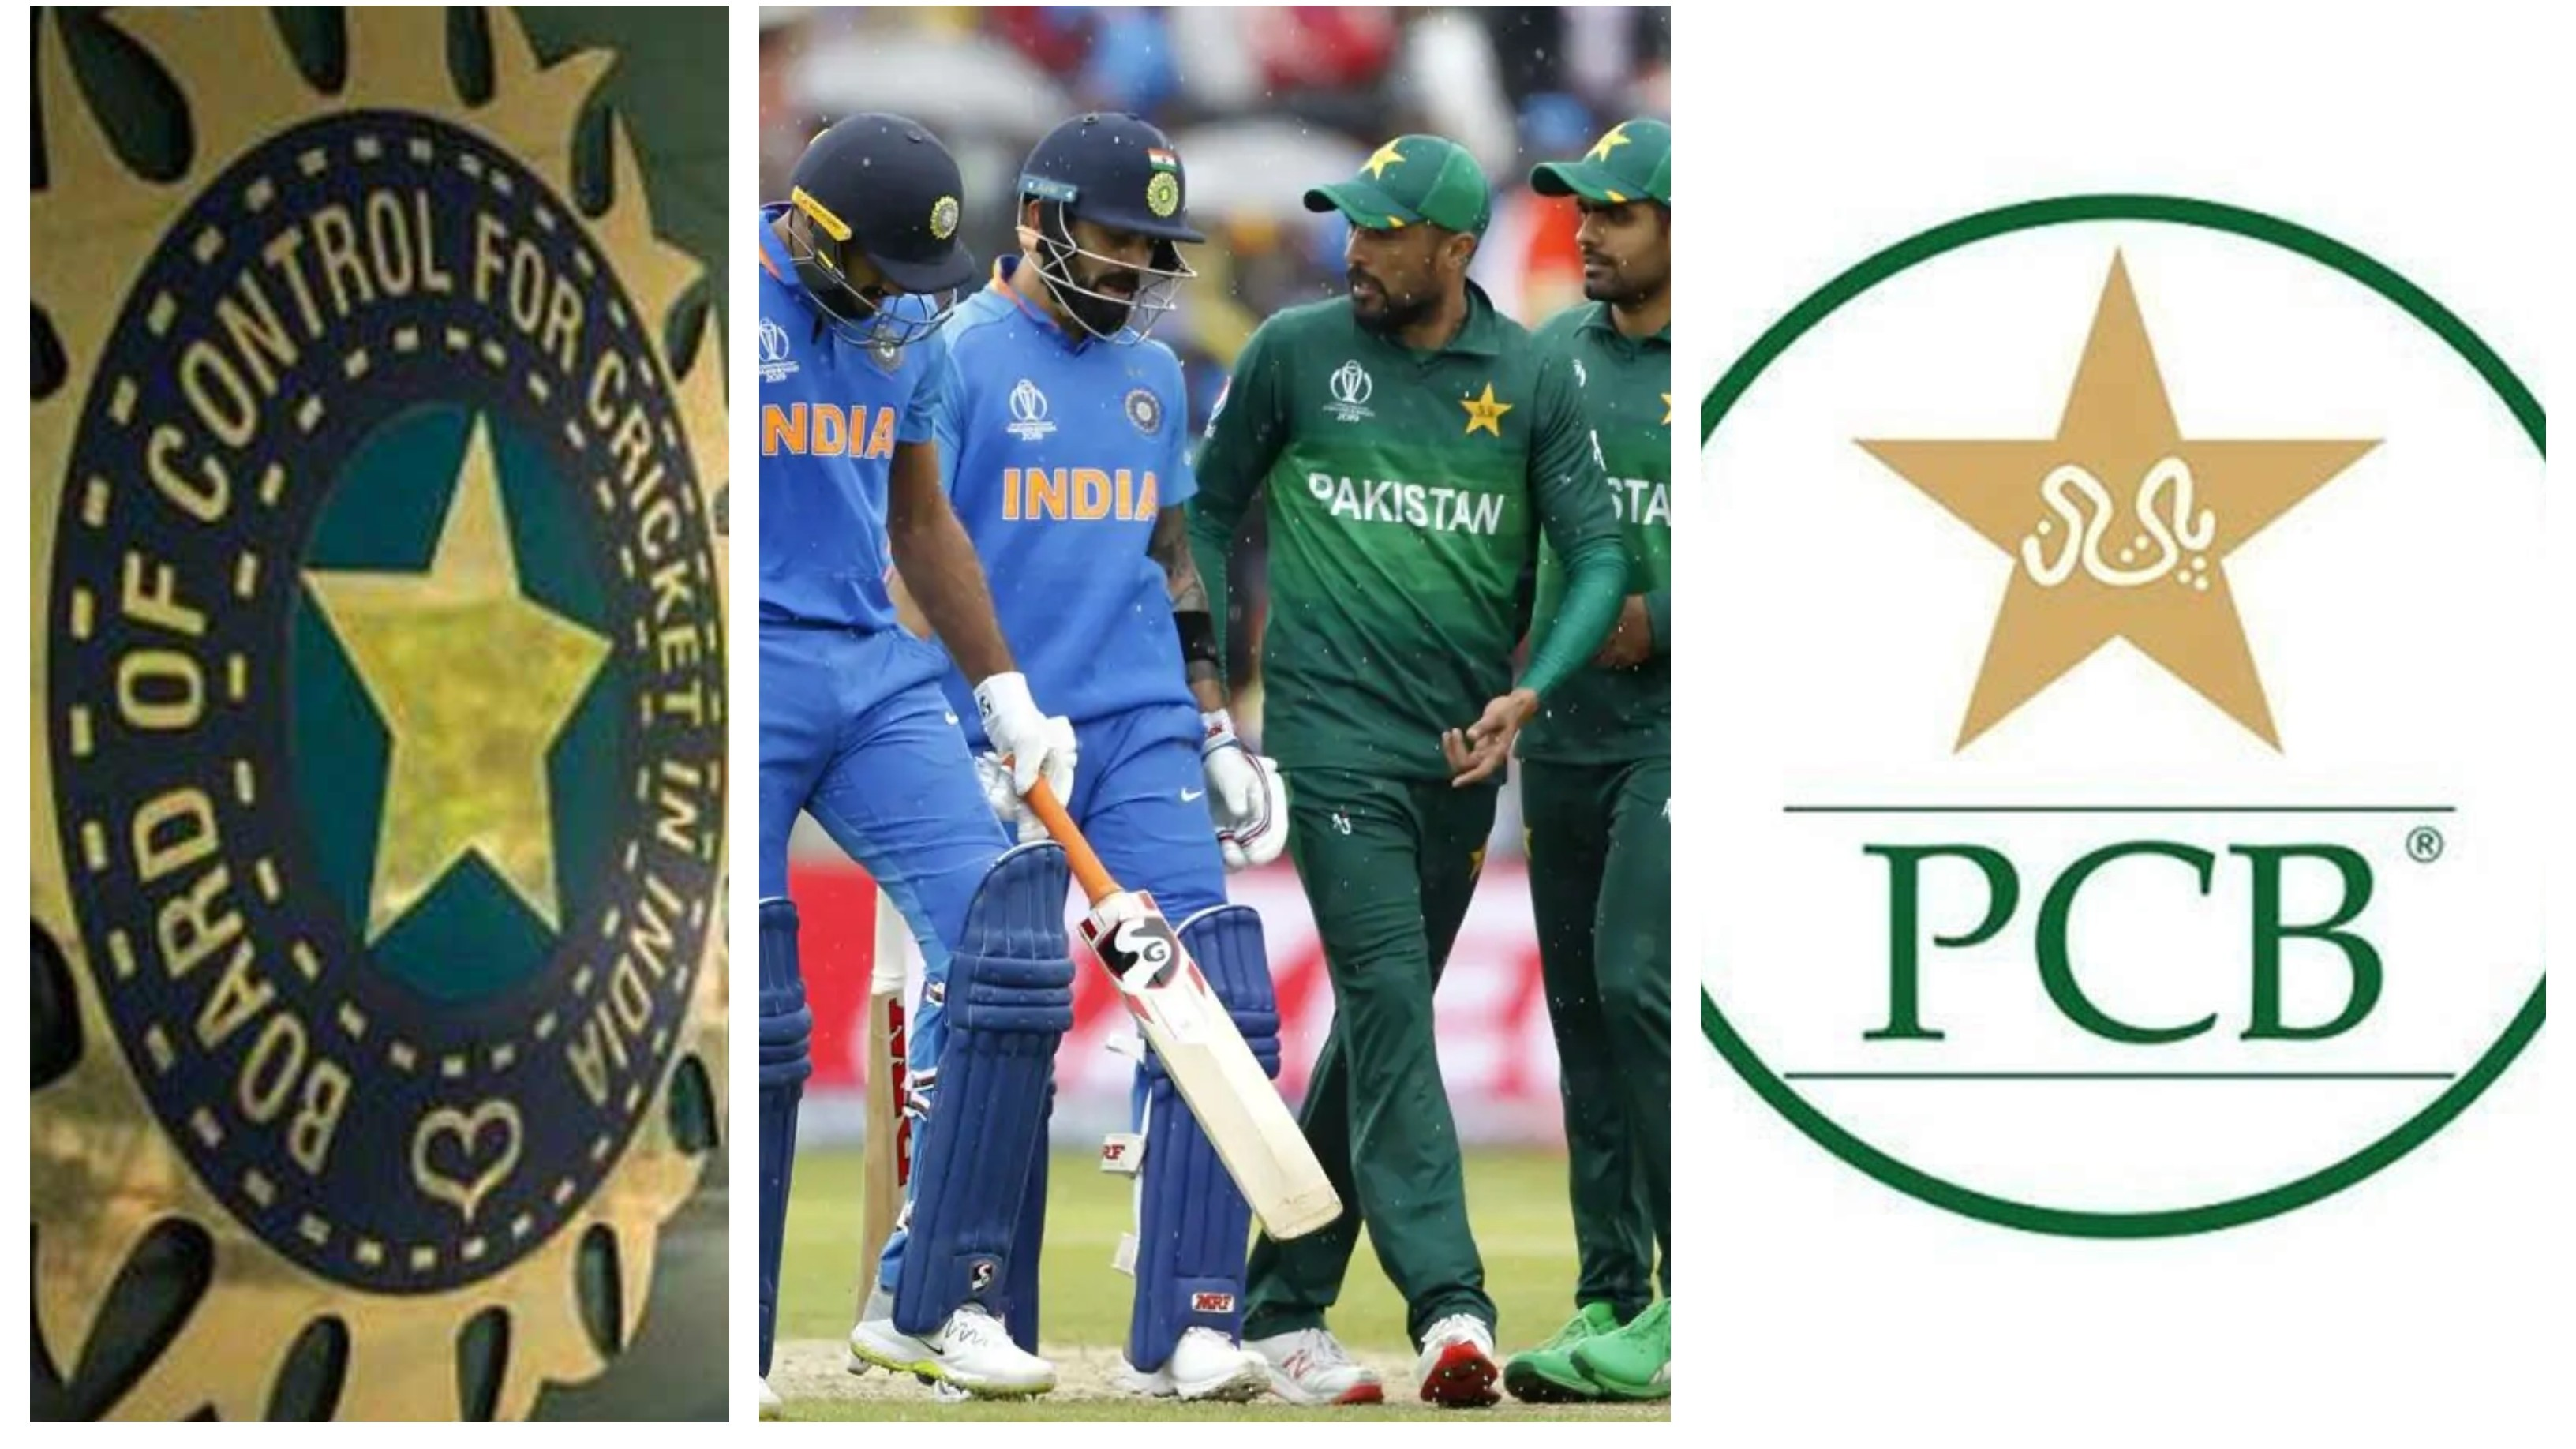 PCB wants written assurance from BCCI over Pakistan's participation in two World Cups in India